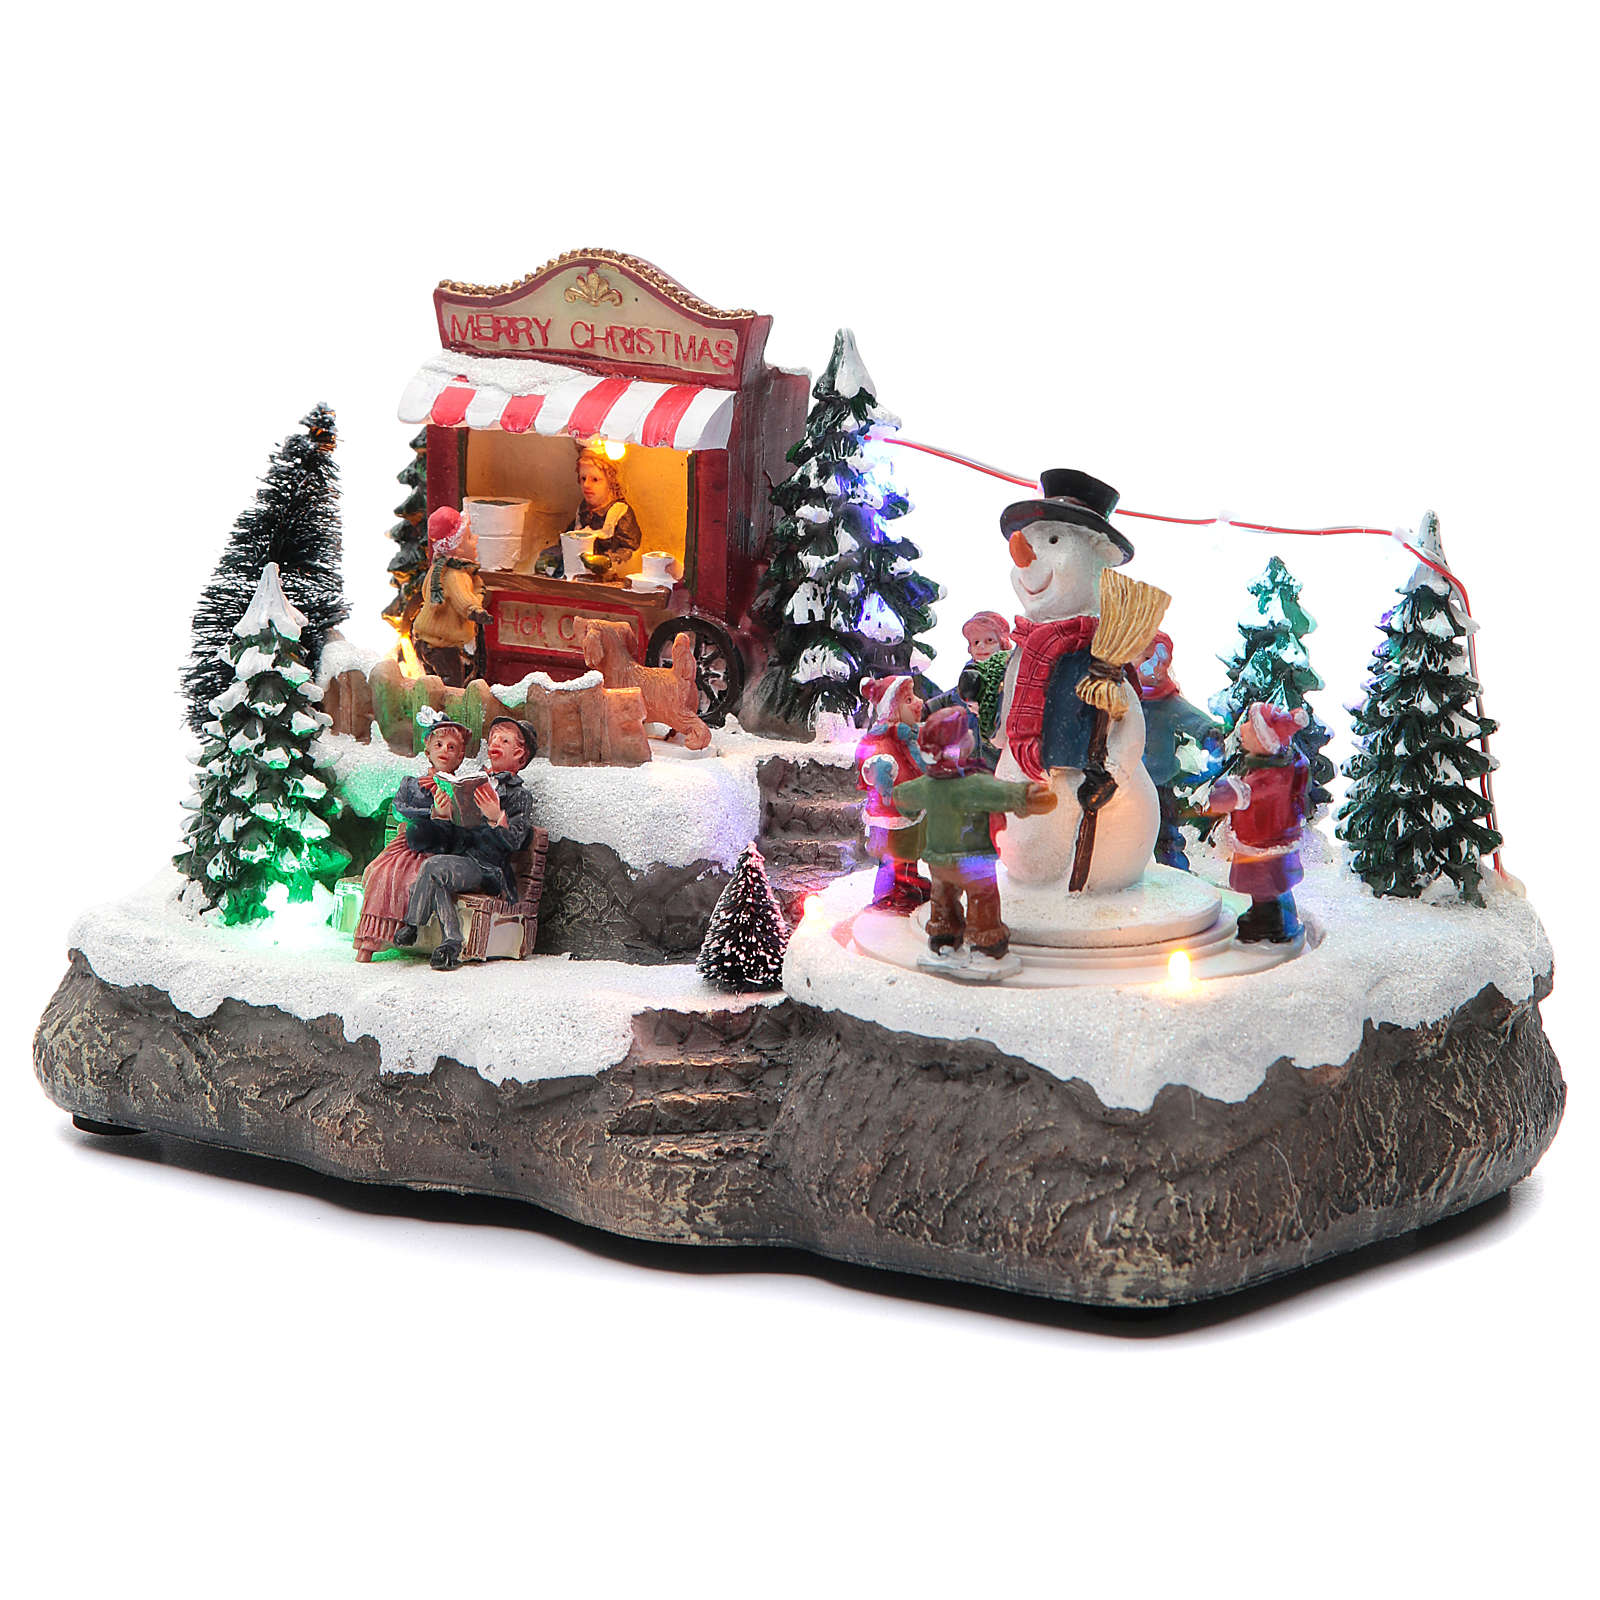 Christmas village with Ring a Ring-o' roses game and snowman  25x15x15 cm 3